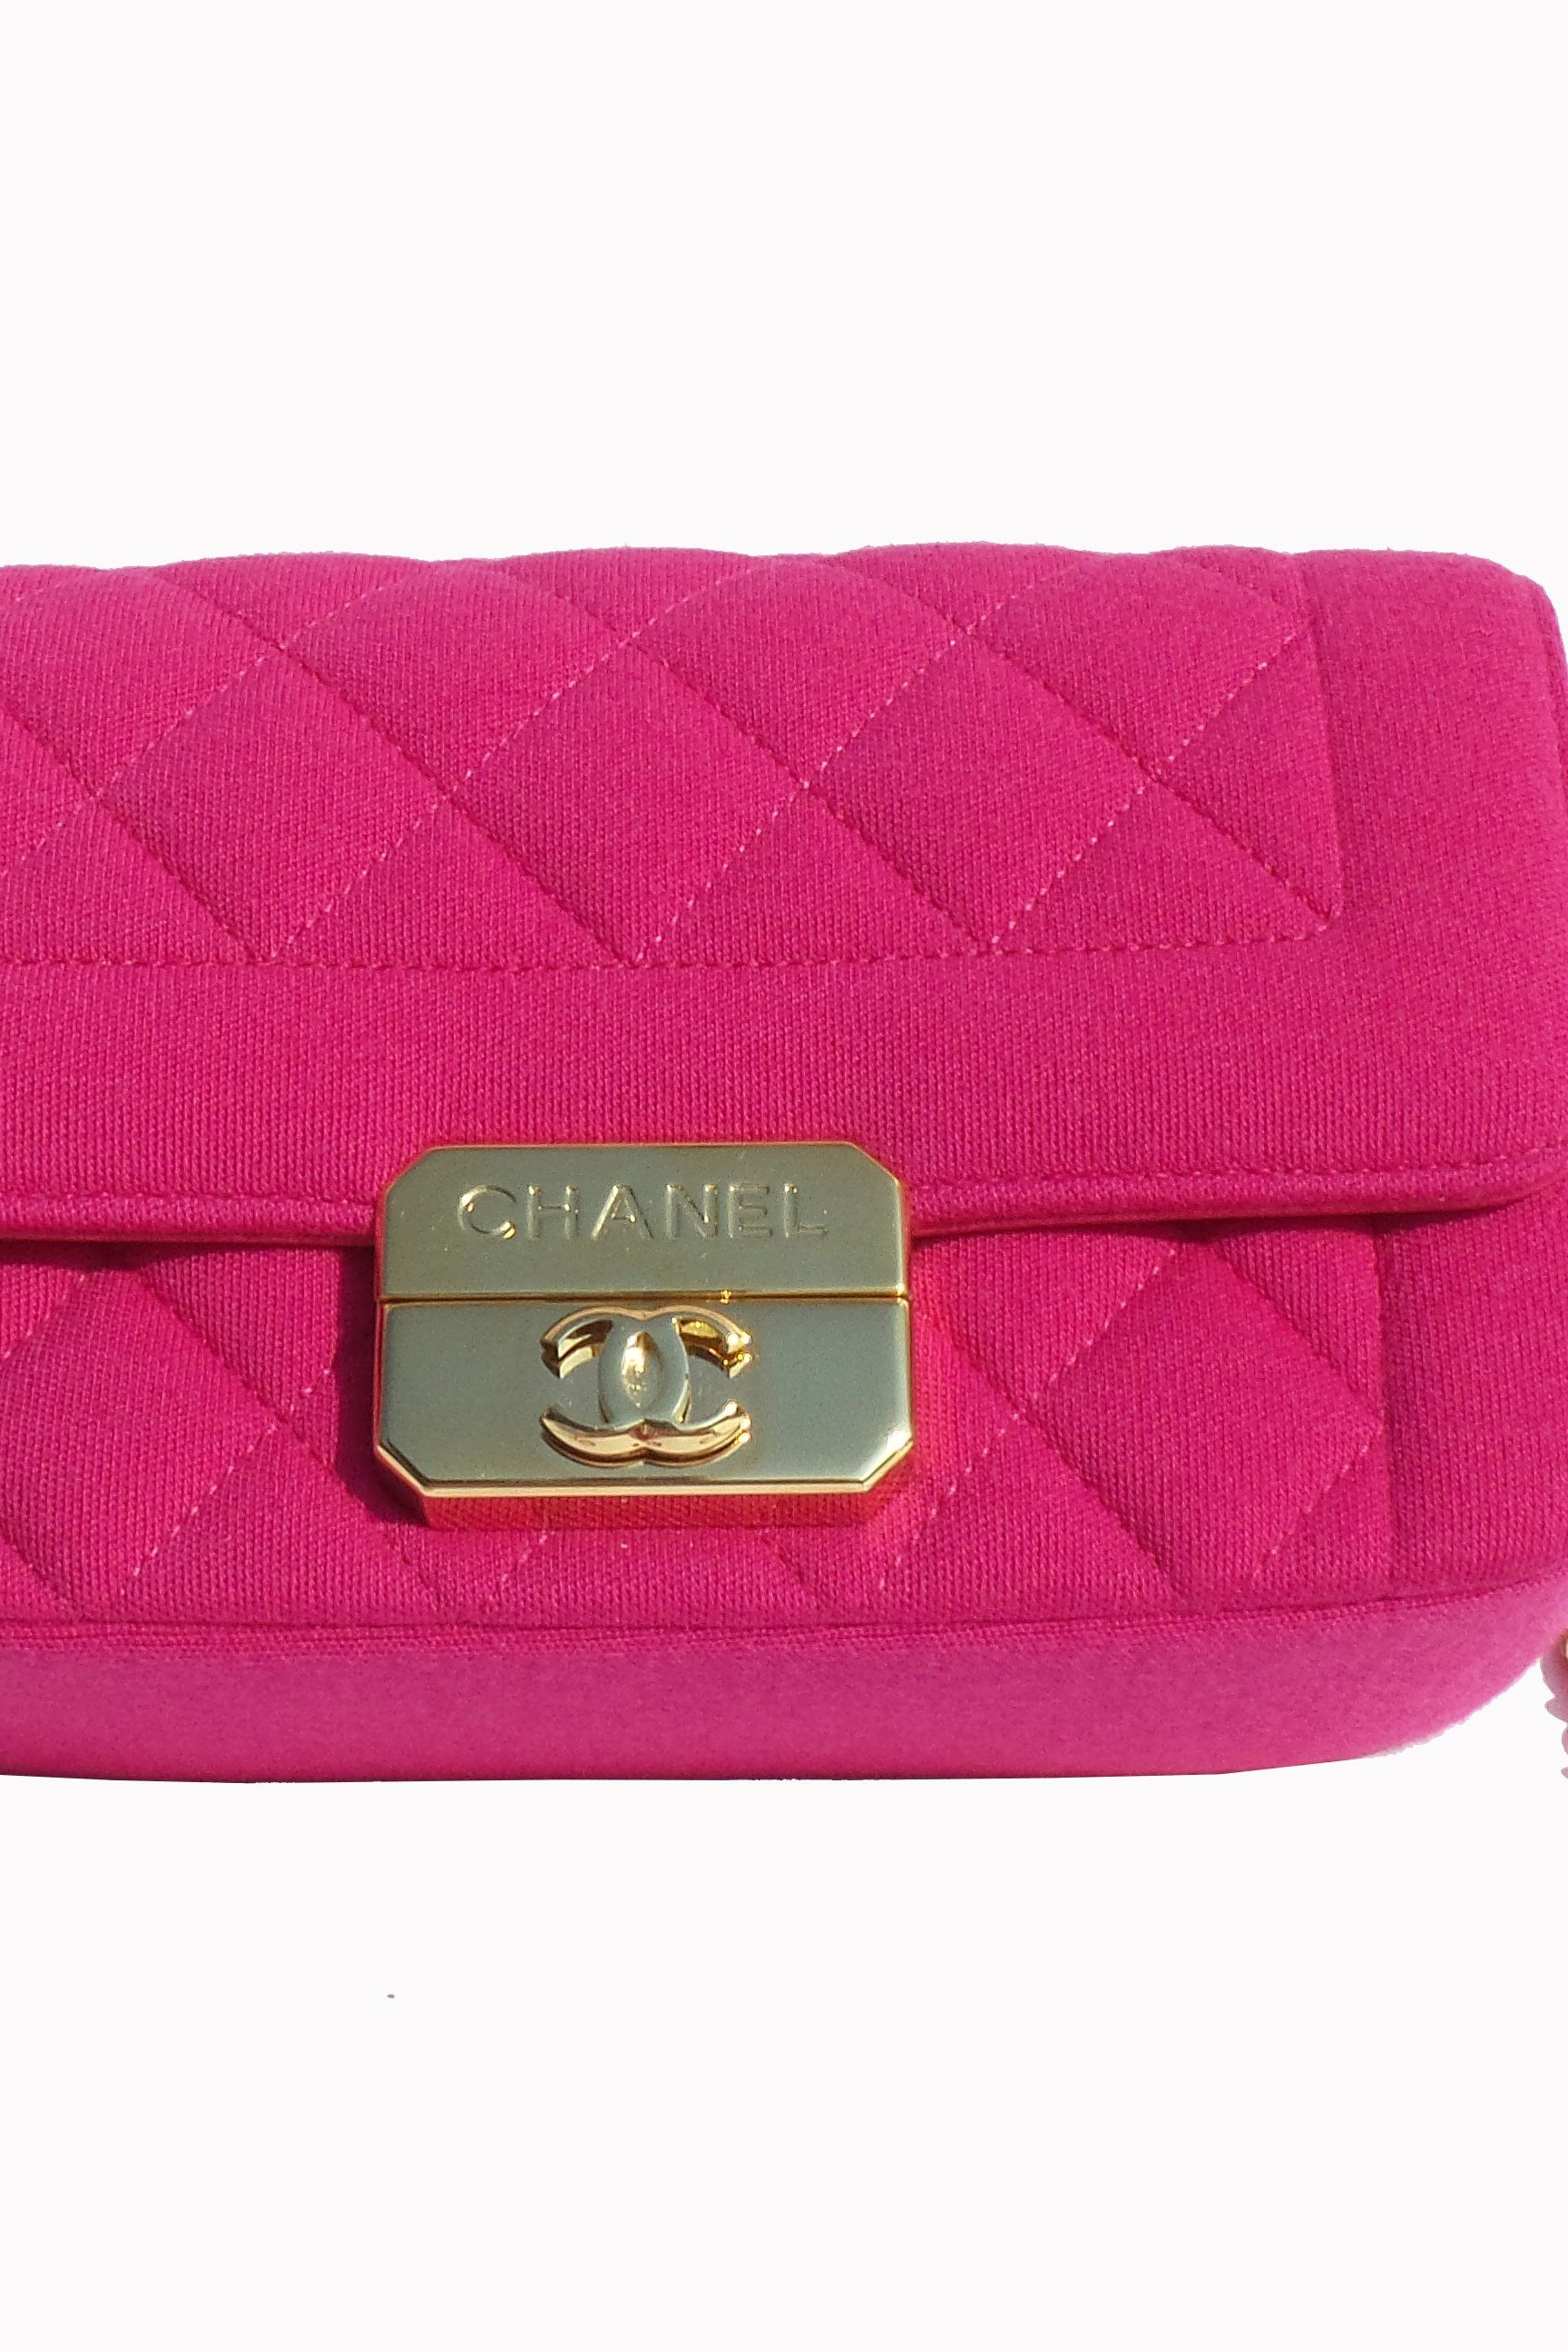 Chanel Hot Pink Quilted Jersey Mini Flap Bag 4